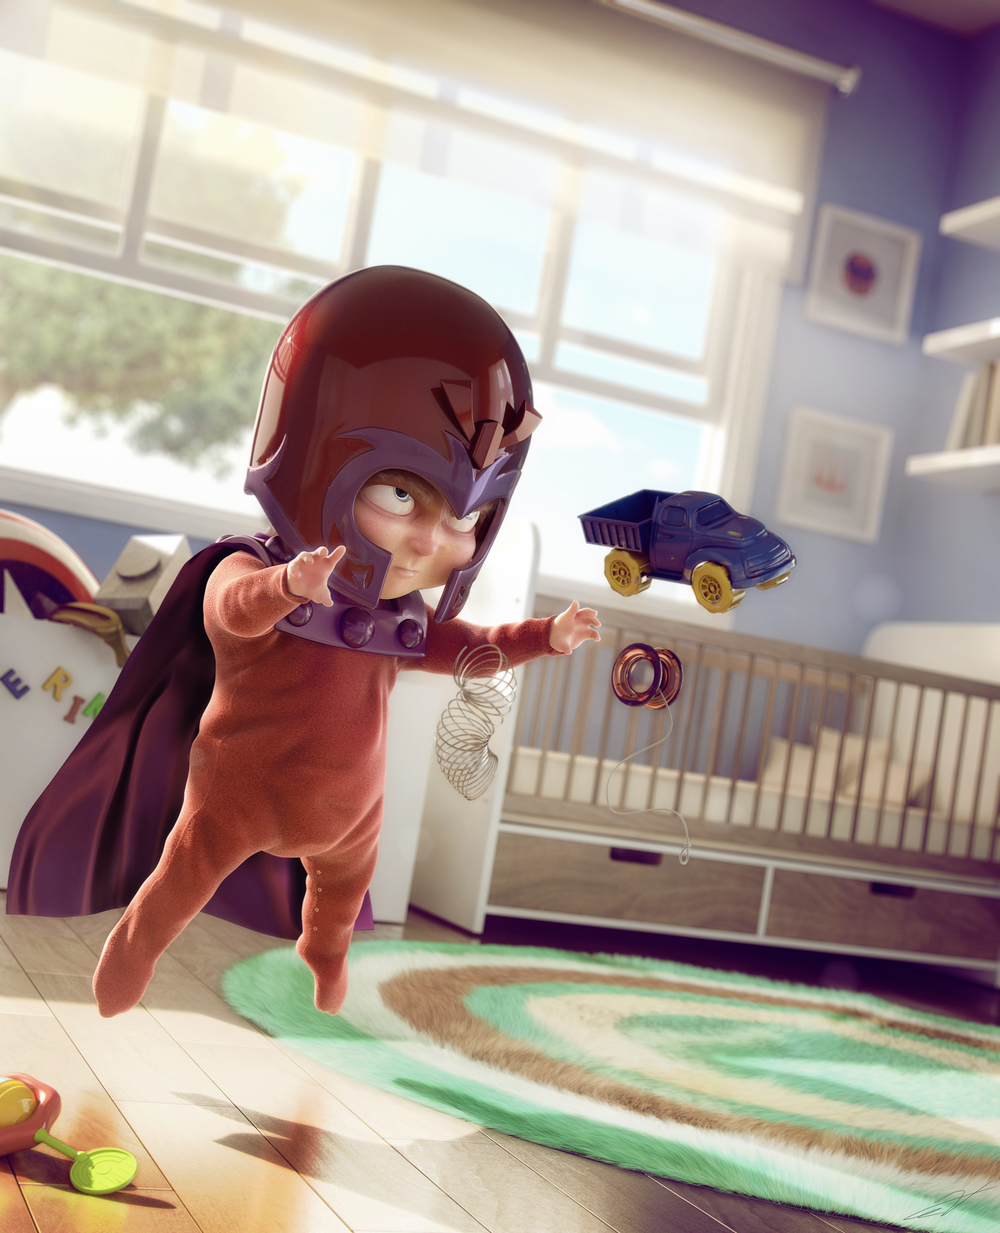 X-Men meets Pixar mashup. 3D render by Victor Hugo.